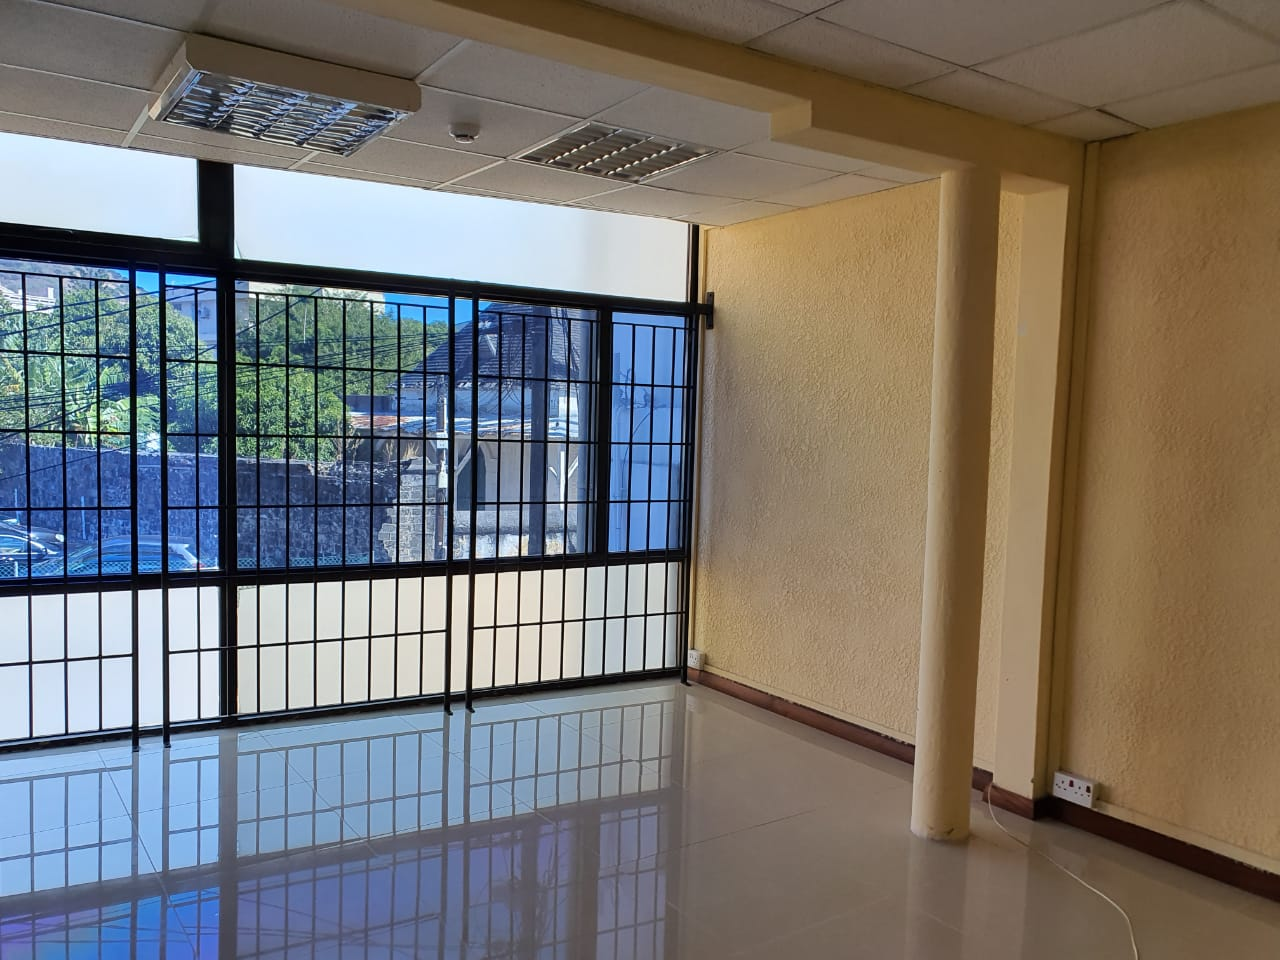 Second Floor Office Space for Rent - Edith Cavell Street, Port Louis